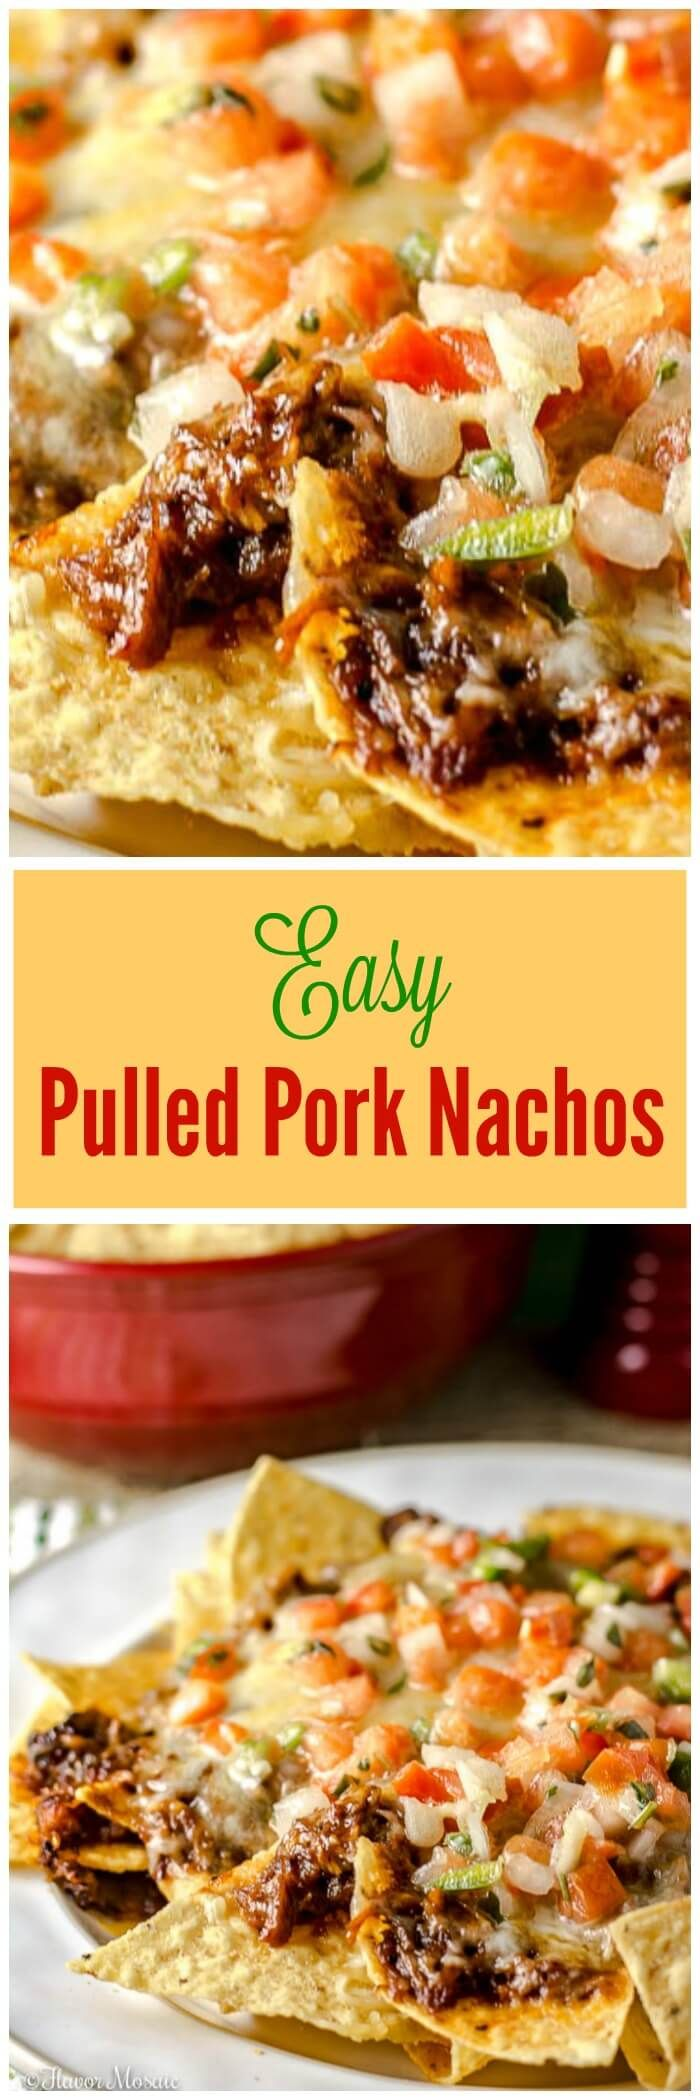 These Easy Pulled Pork Nachos by Gridiron Grub Guru with barbecue sauce are…